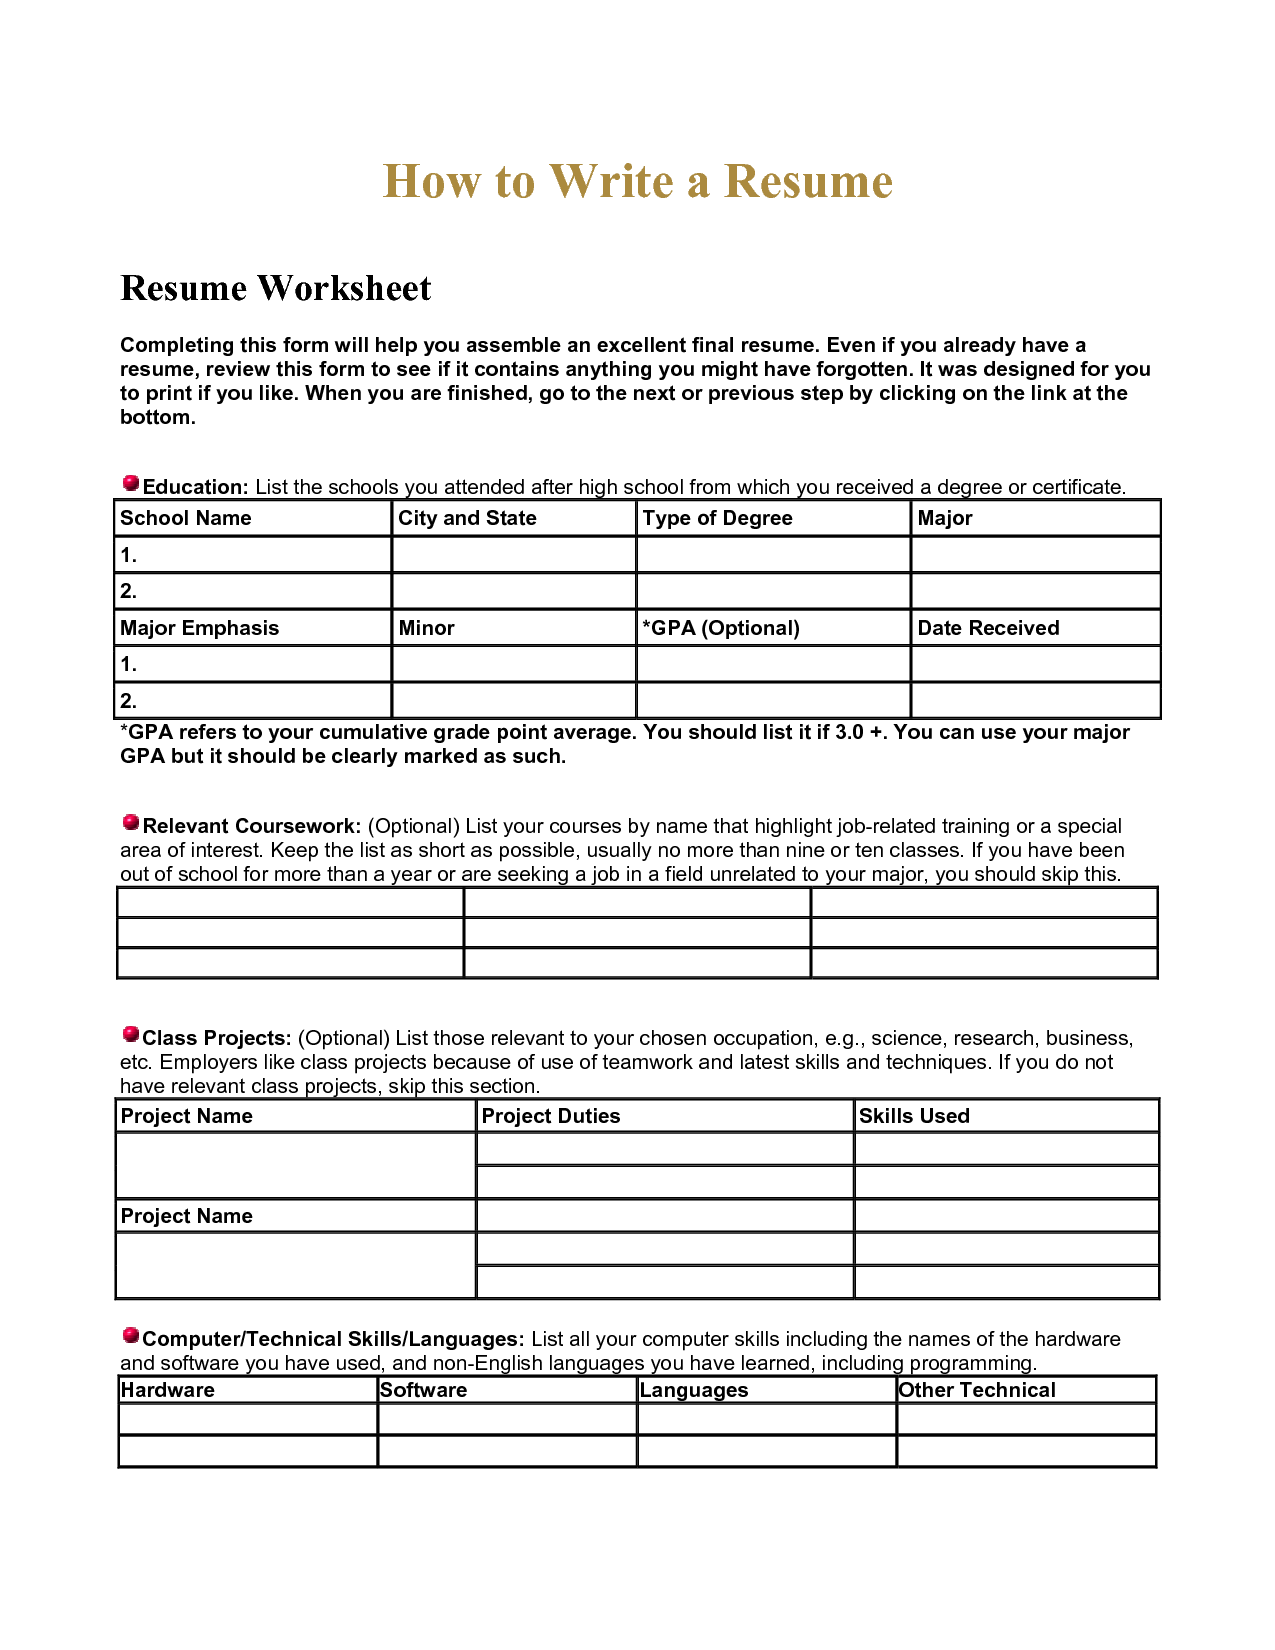 Worksheets Resume Worksheet Template high school resume worksheet using your academic experiences to template 7 for students printable